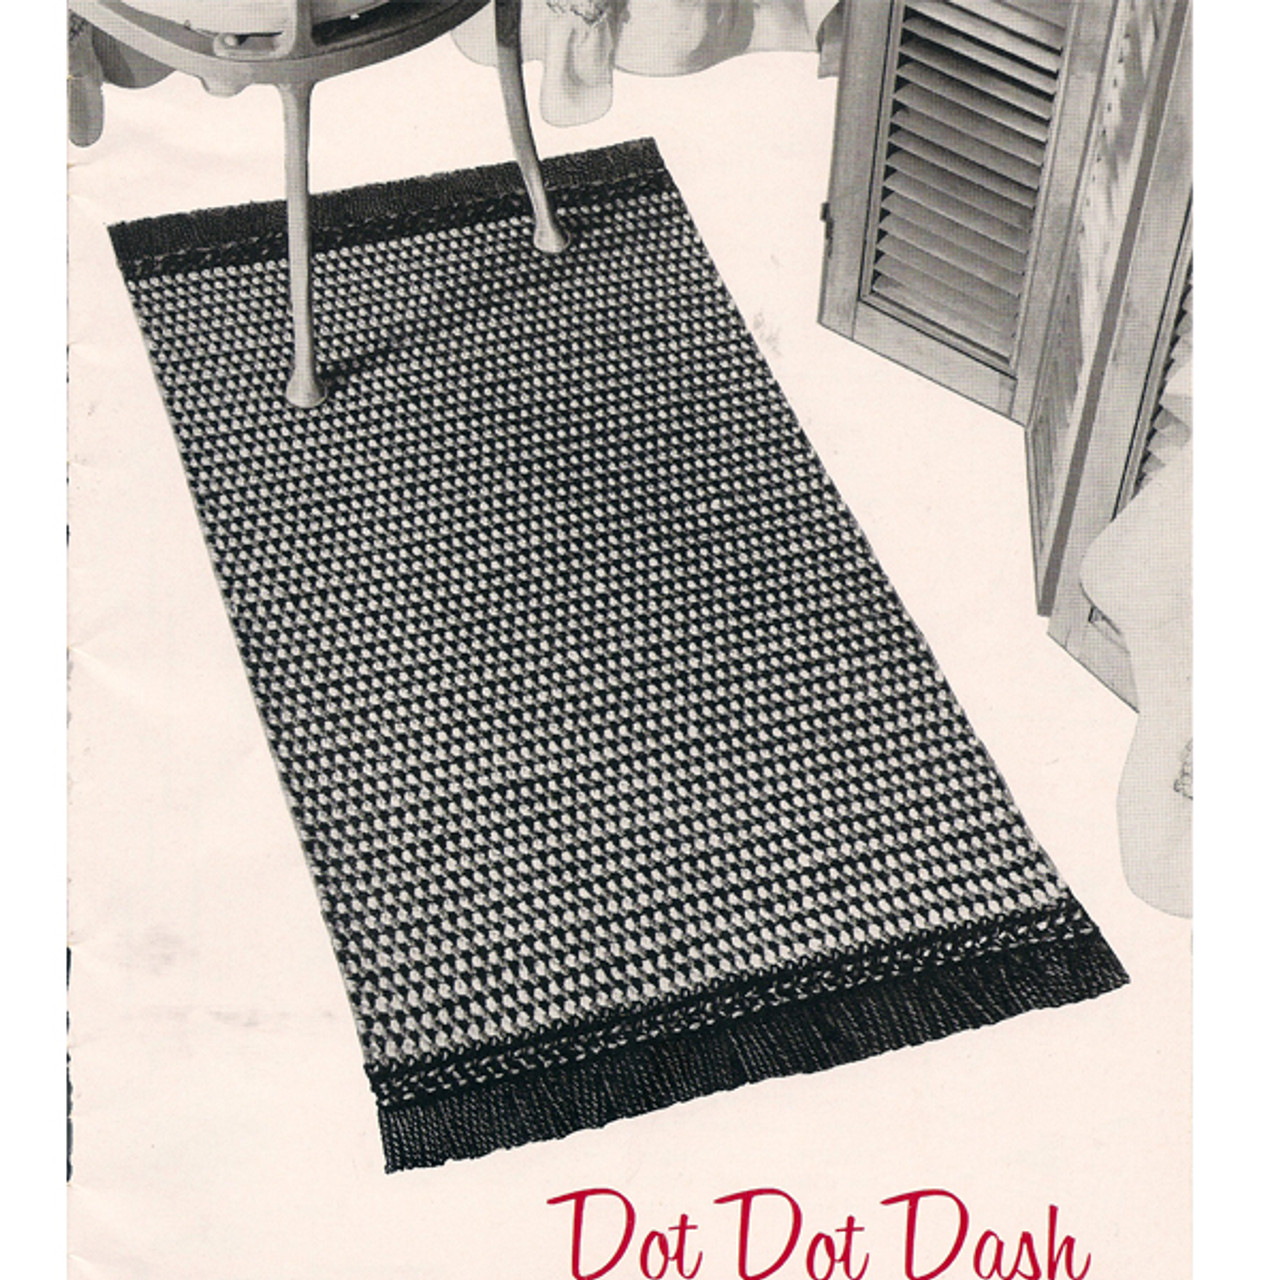 Dotted Crochet Rug Pattern